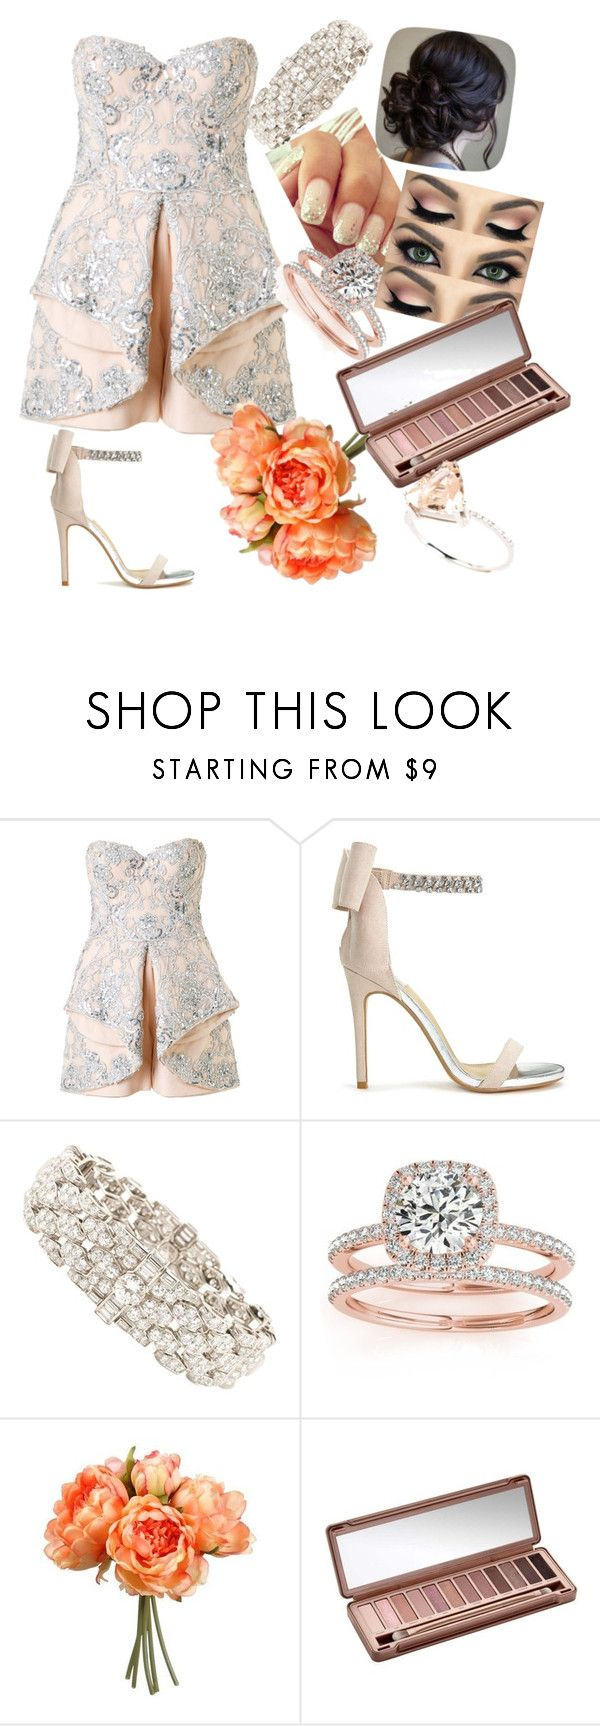 """wedding playsuit"" by fayehueston ❤ liked on Polyvore featuring Mikael D, Miss Selfridge, Bulgari, Allurez and Urban Decay"